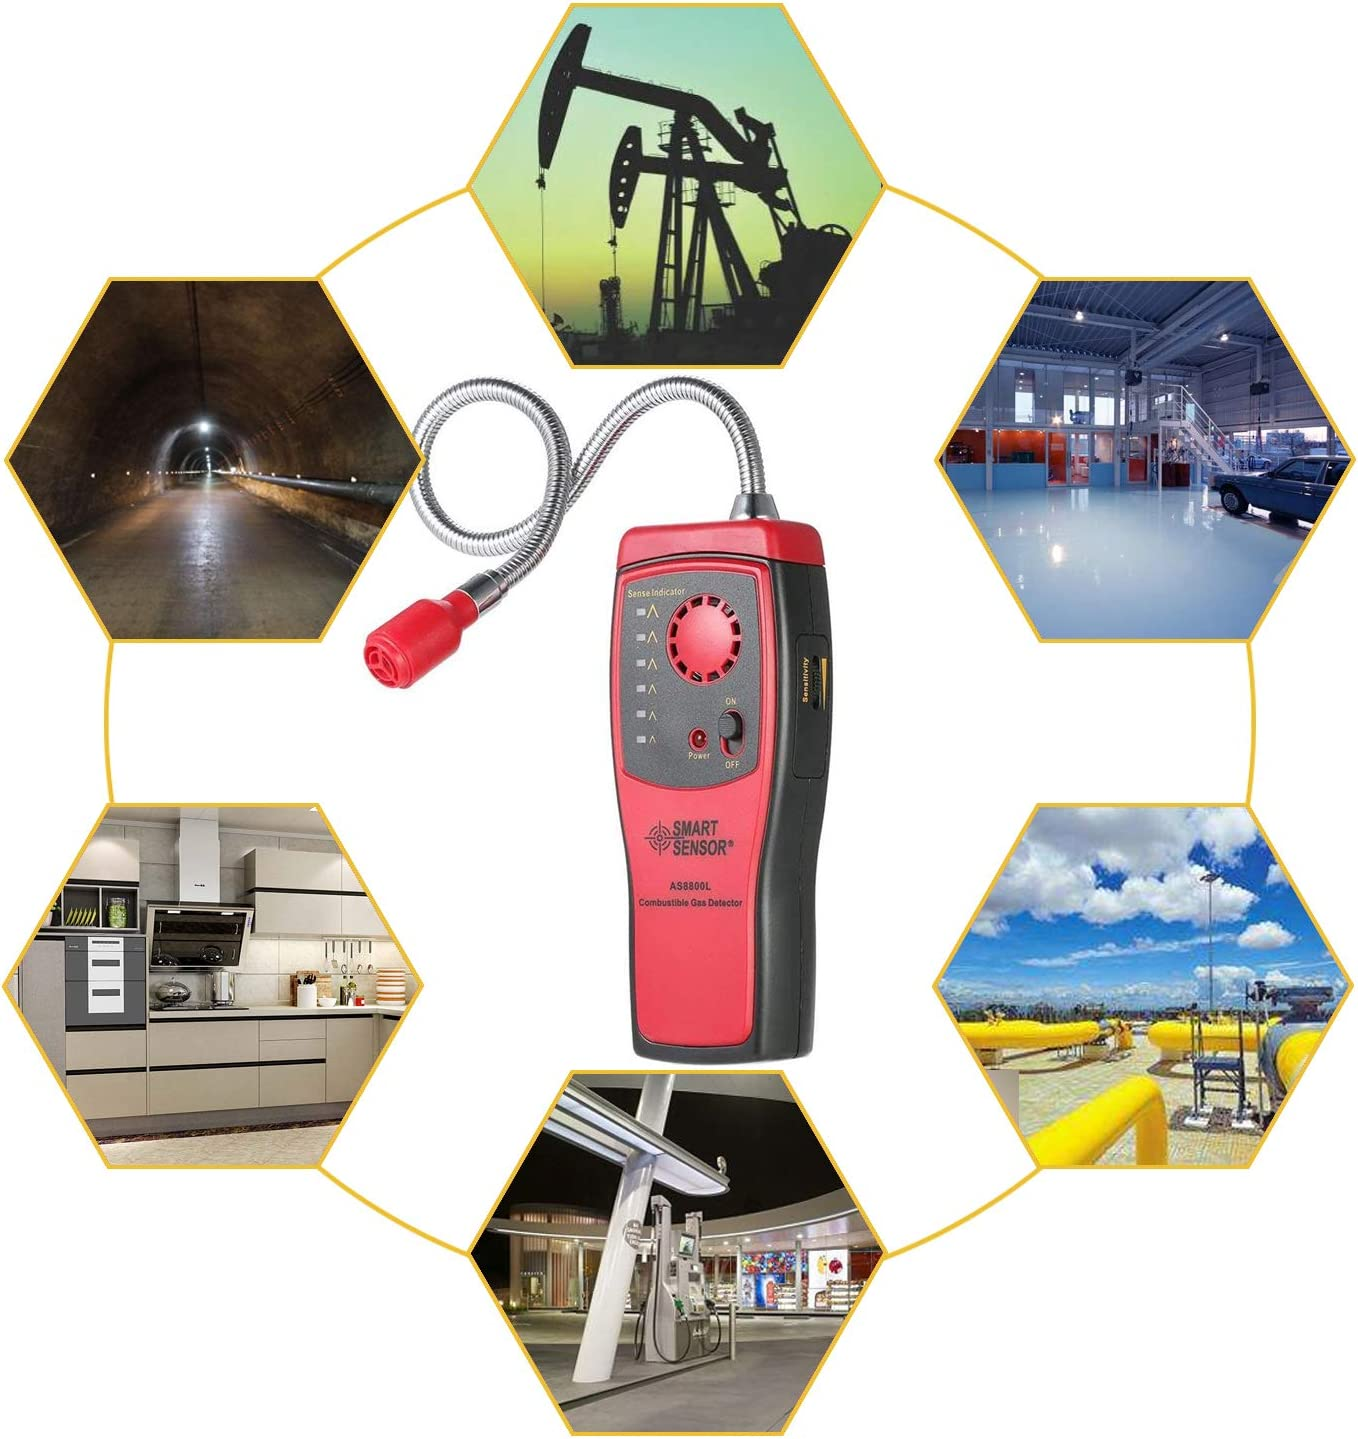 Portable Gas Leak Detector Combustible Propane Methane Gas Sensorr with Sound Warning Adjustable Sensitivity and Flex Probe Natural Gas Detector